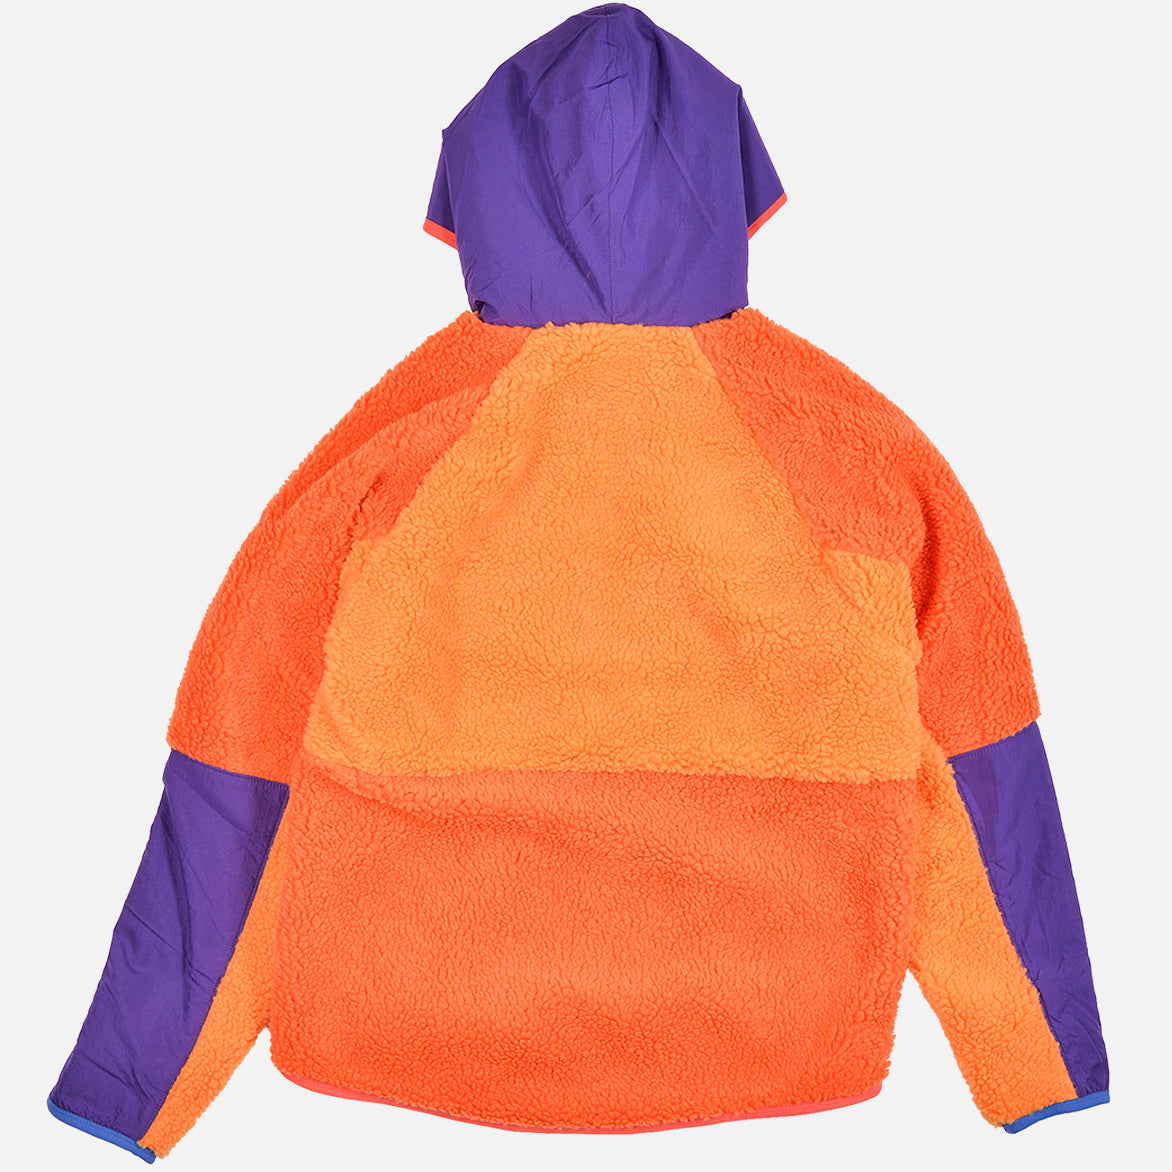 NSW 1/2 ZIP SHERPA HOODIE - KUMQUAT / COURT PURPLE